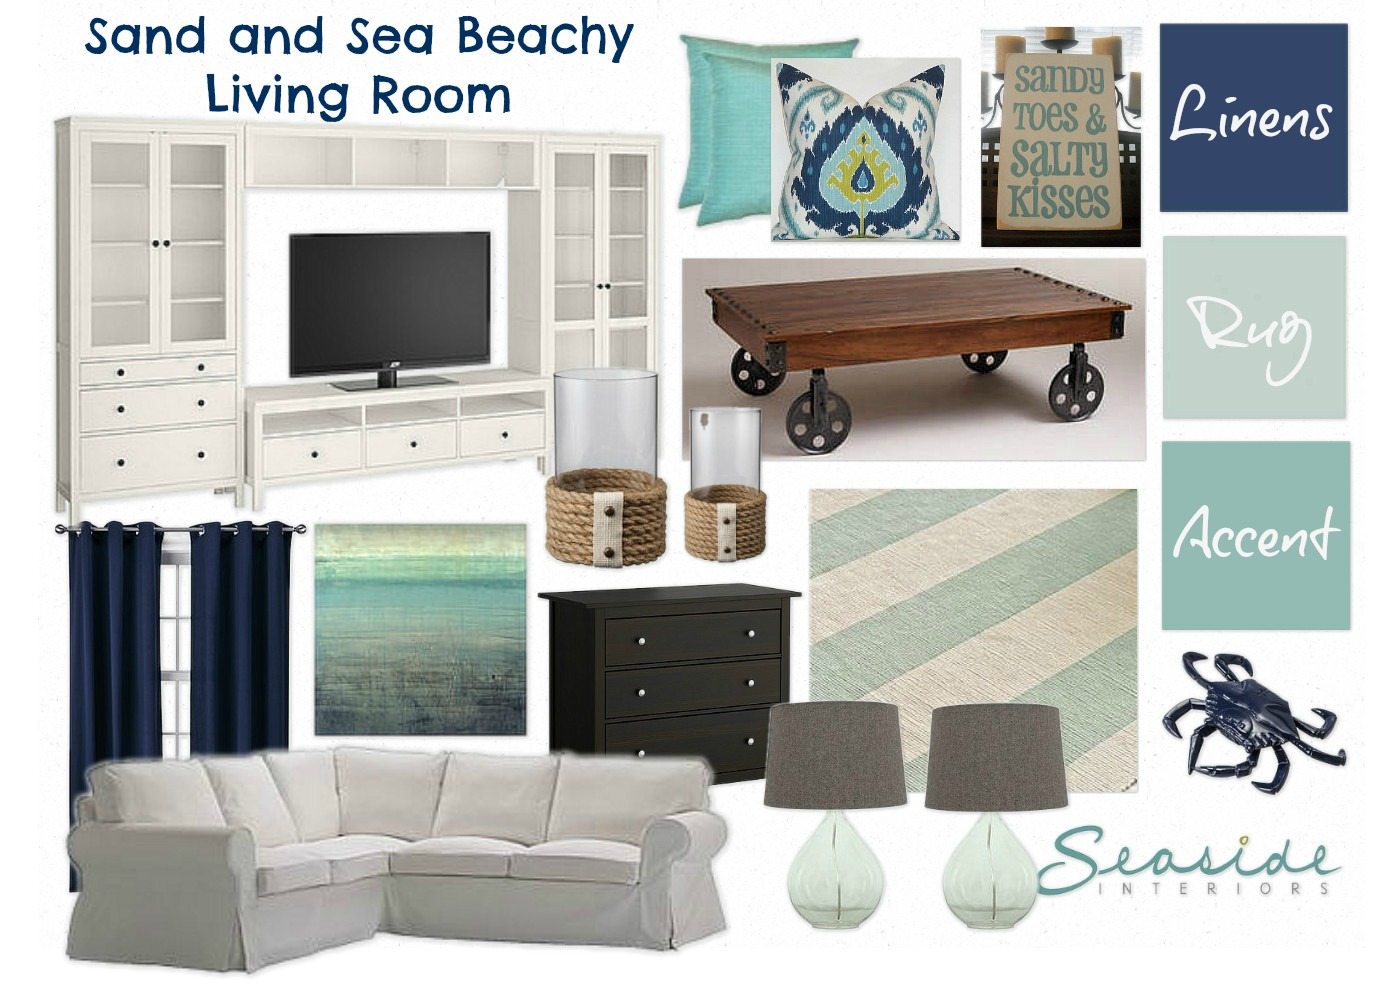 Grey Office Paint Palette Seaside Interiors Sand And Sea Beachy Living Room In Navy